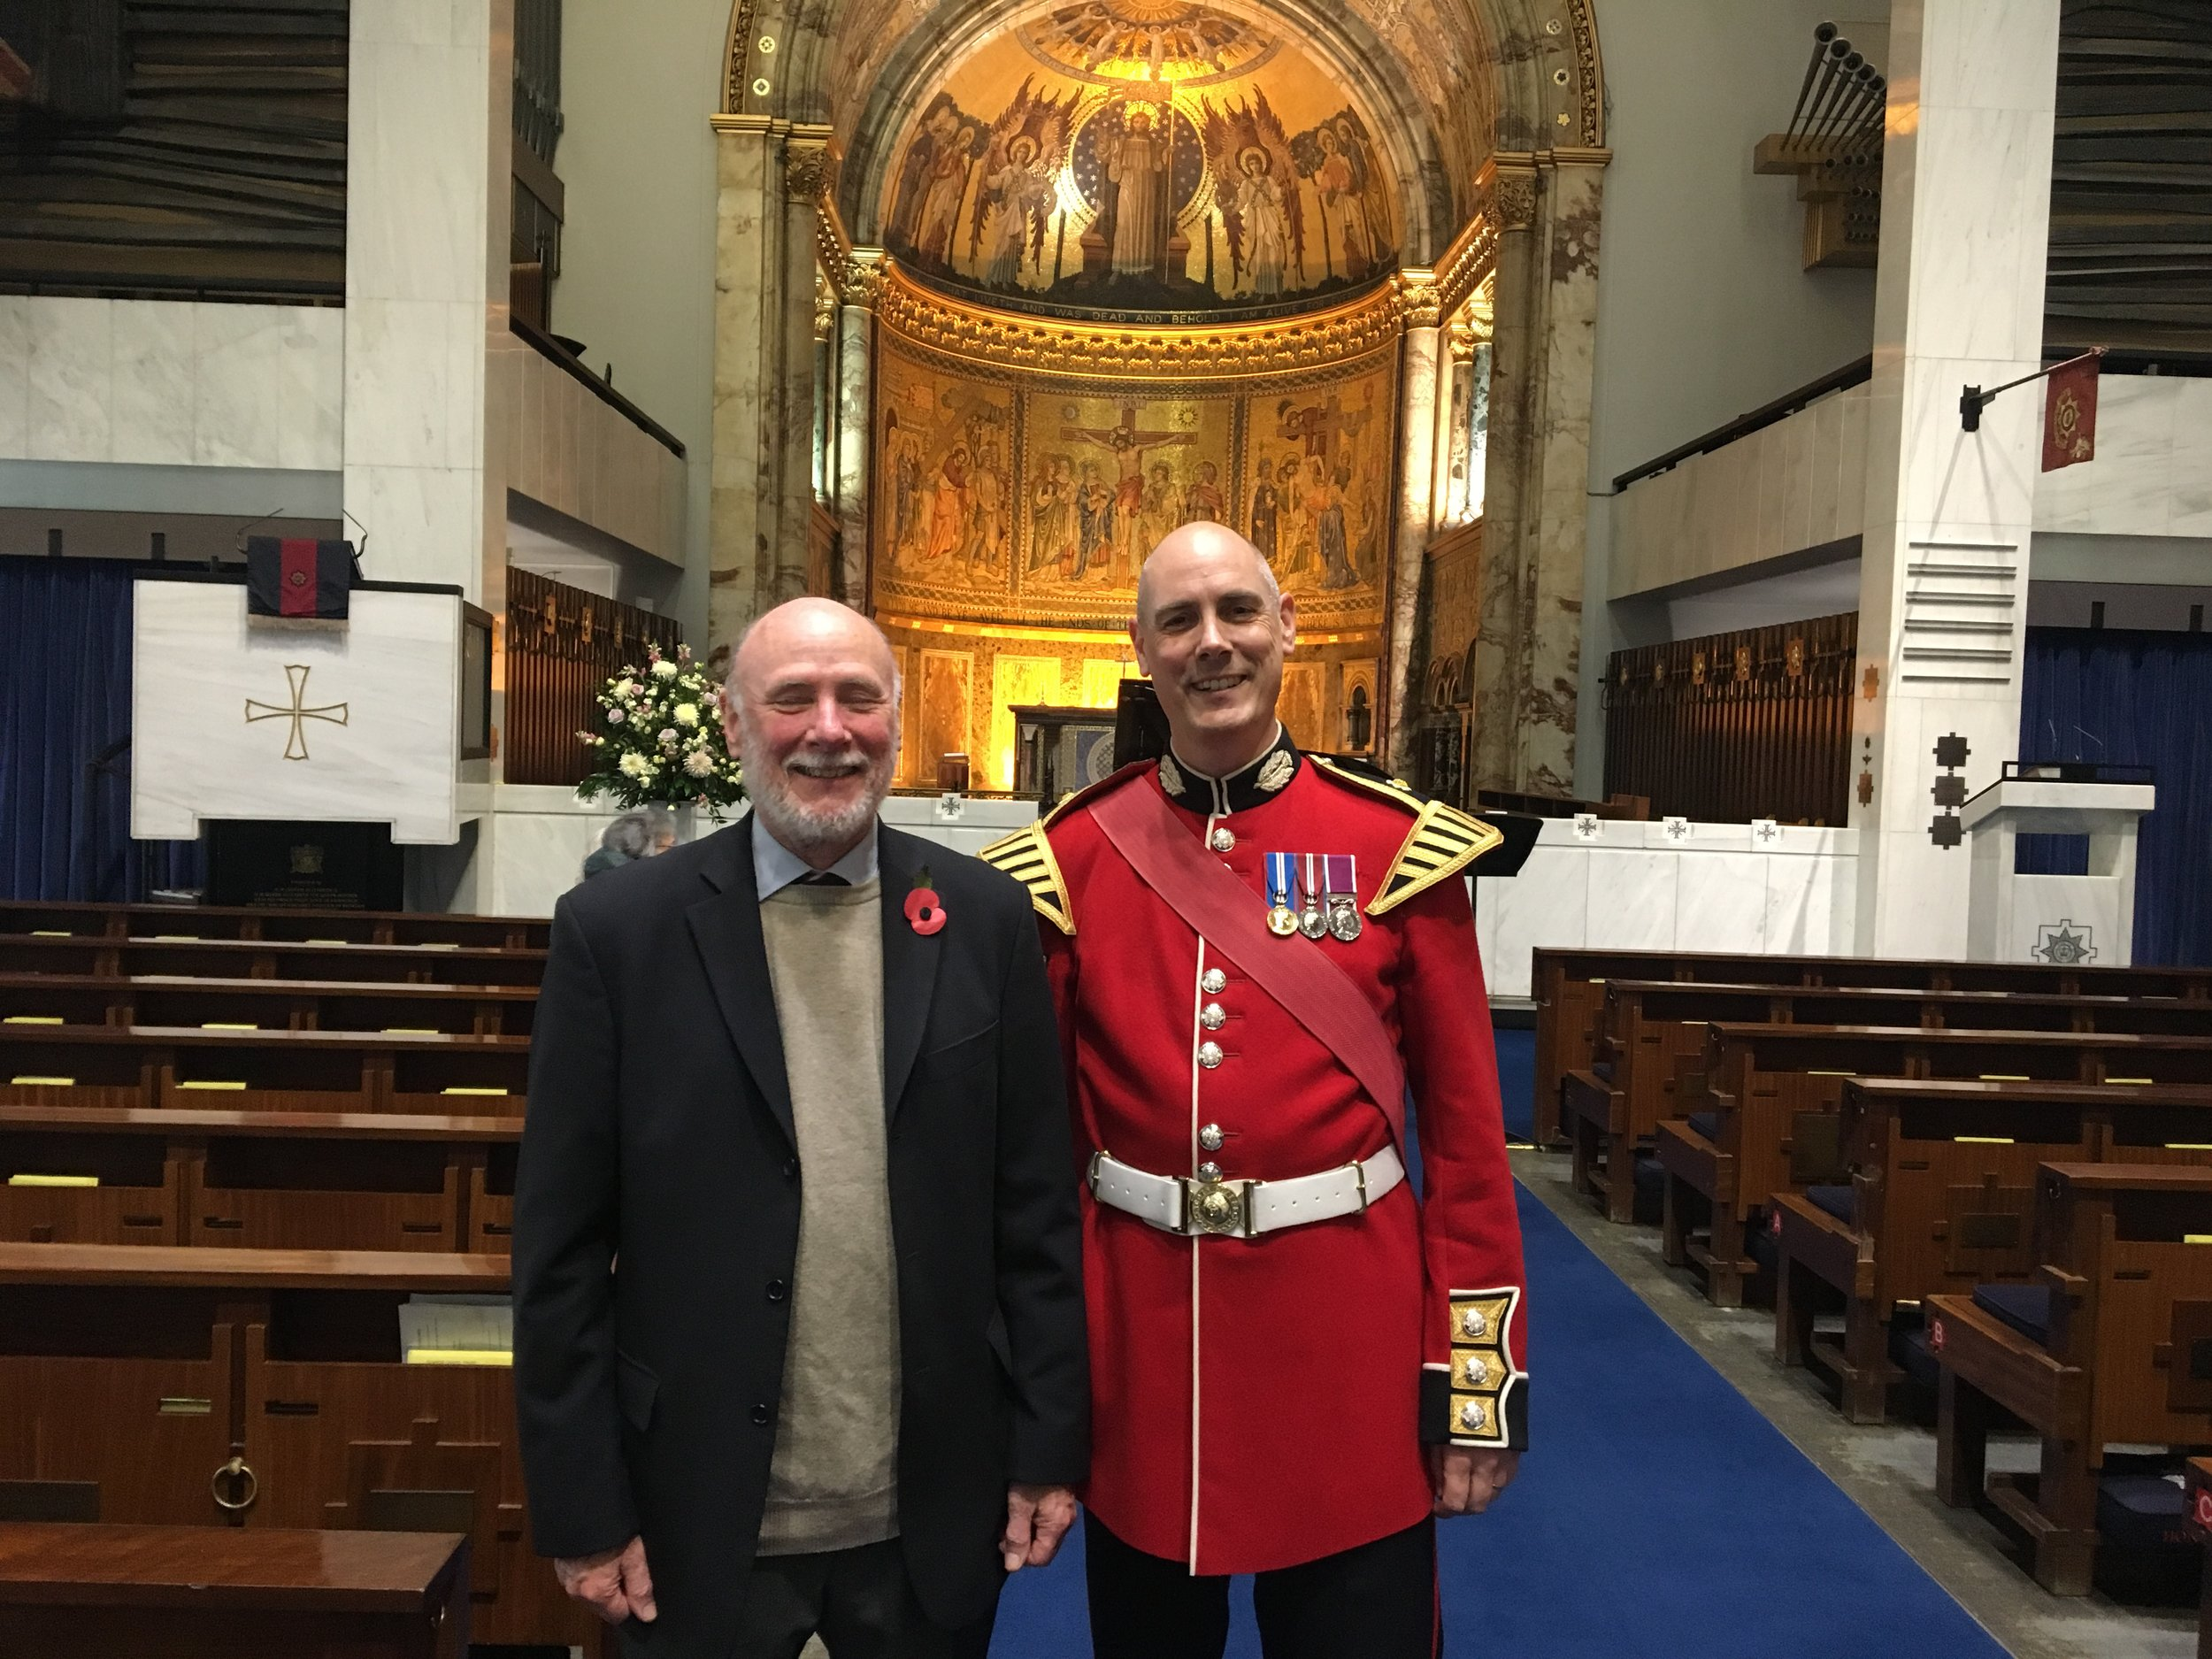 With Dan Rootham, grandson of Cyril Bradley Rootham, October 2017